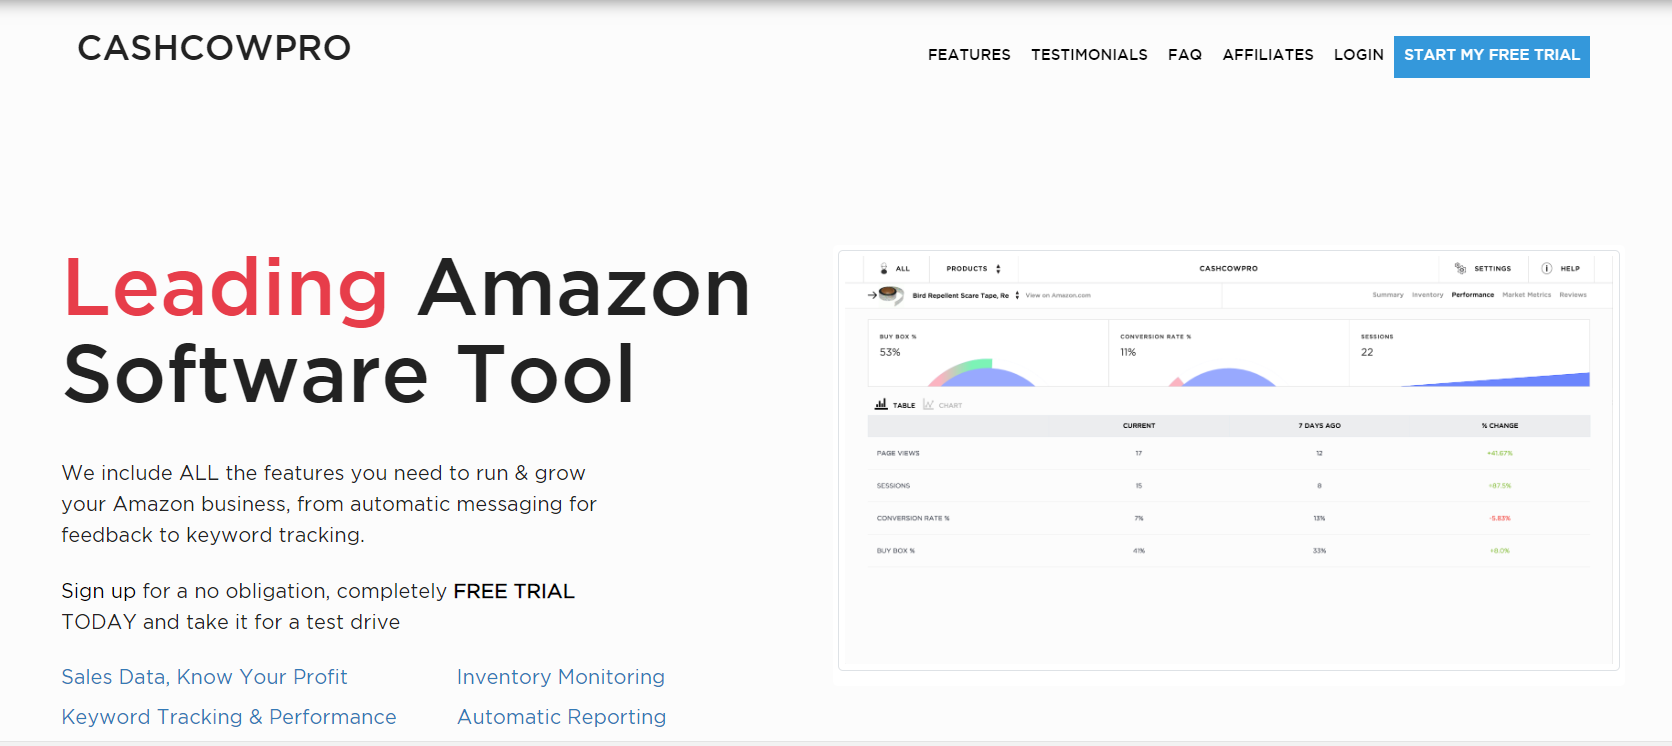 CASHCOWPRO - Winning Analytics for Amazon